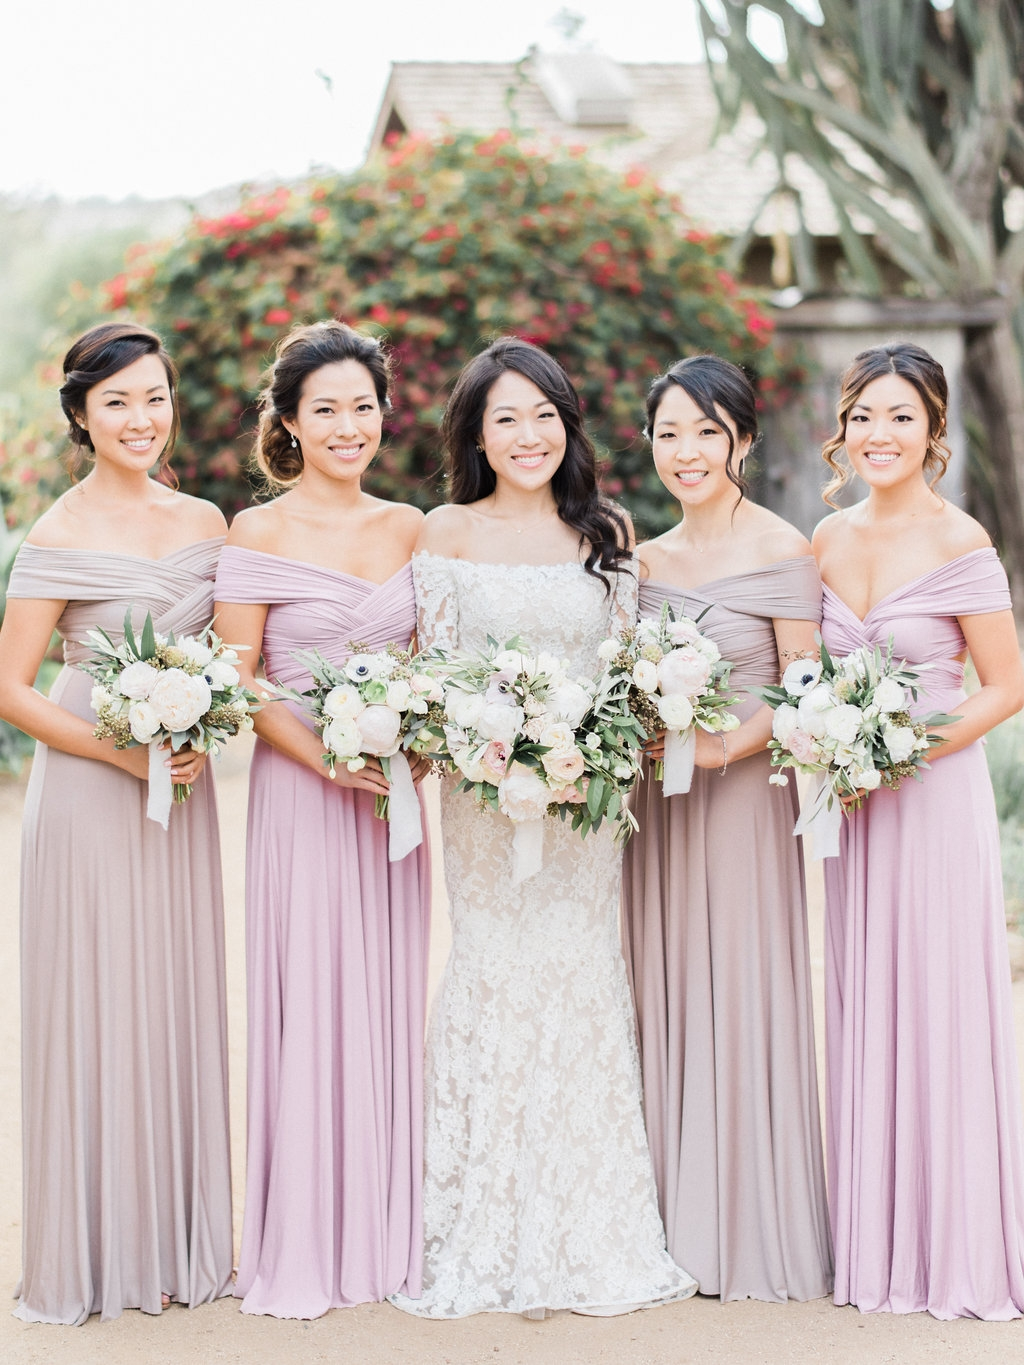 STYLE ME PRETTY : The Prettiest Dusty Purple Garden Wedding